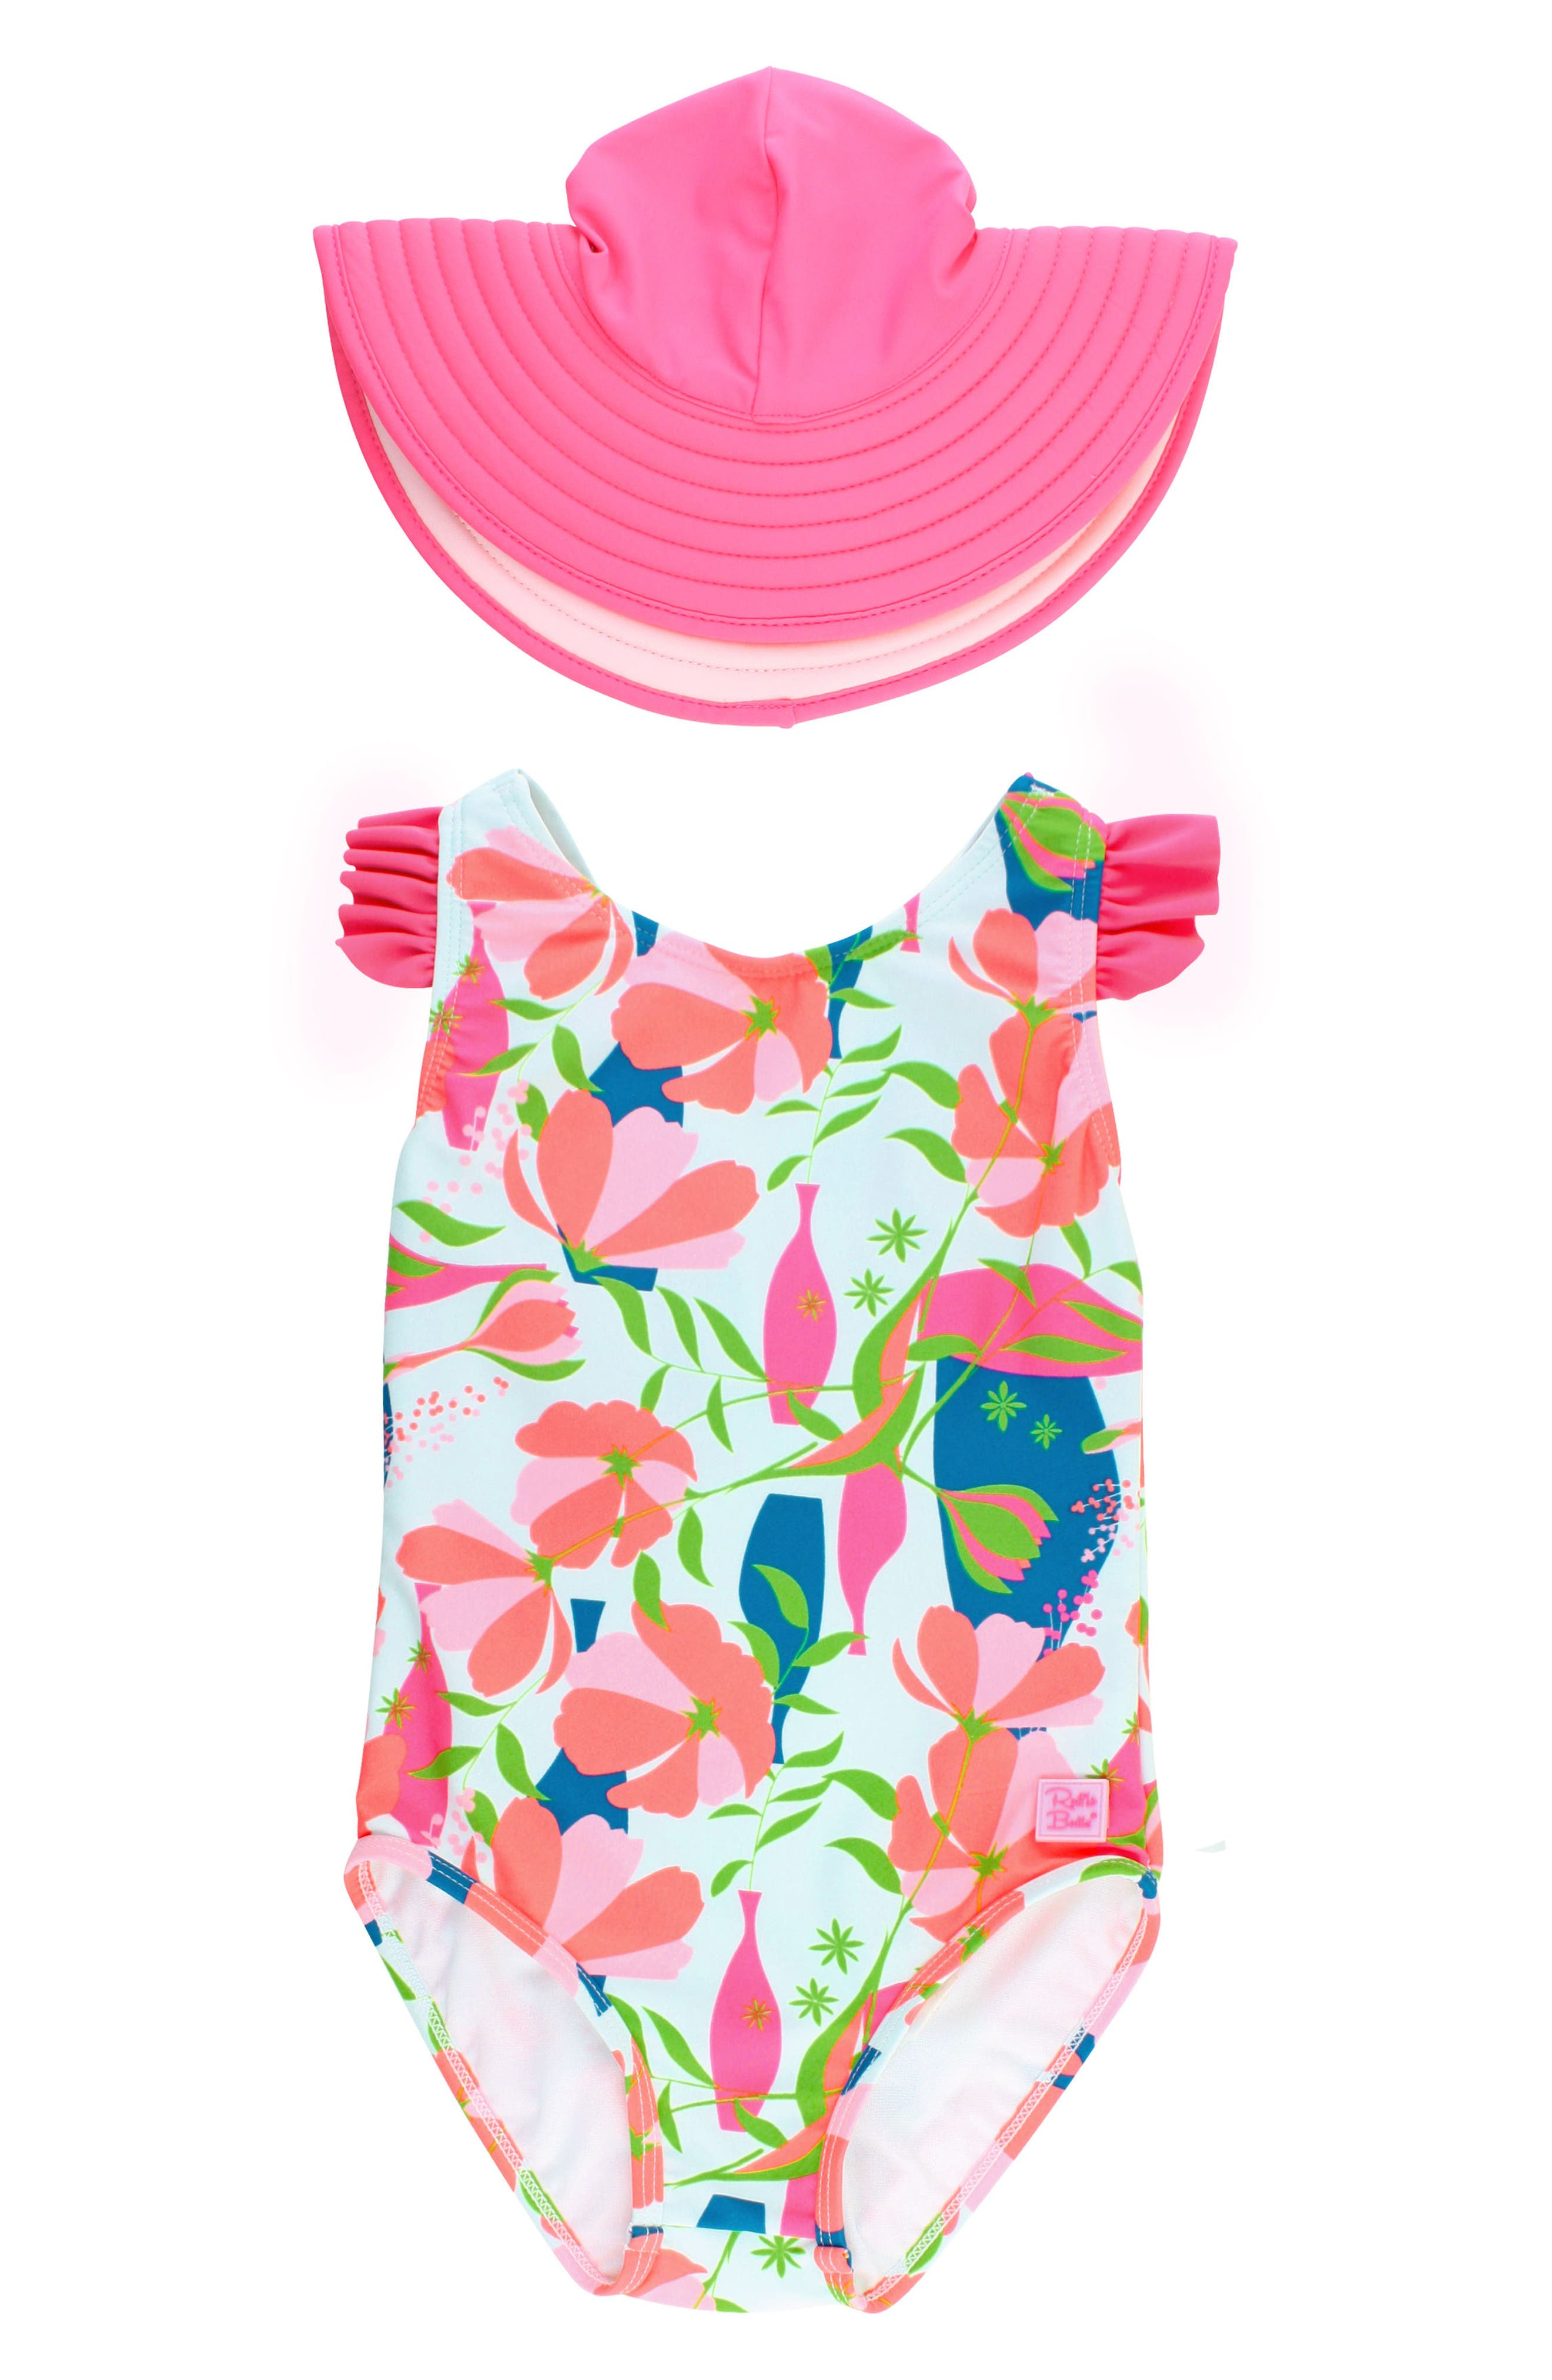 Alternate Image 1 Selected - RuffleButts One-Piece Swimsuit & Hat Set (Toddler Girls)